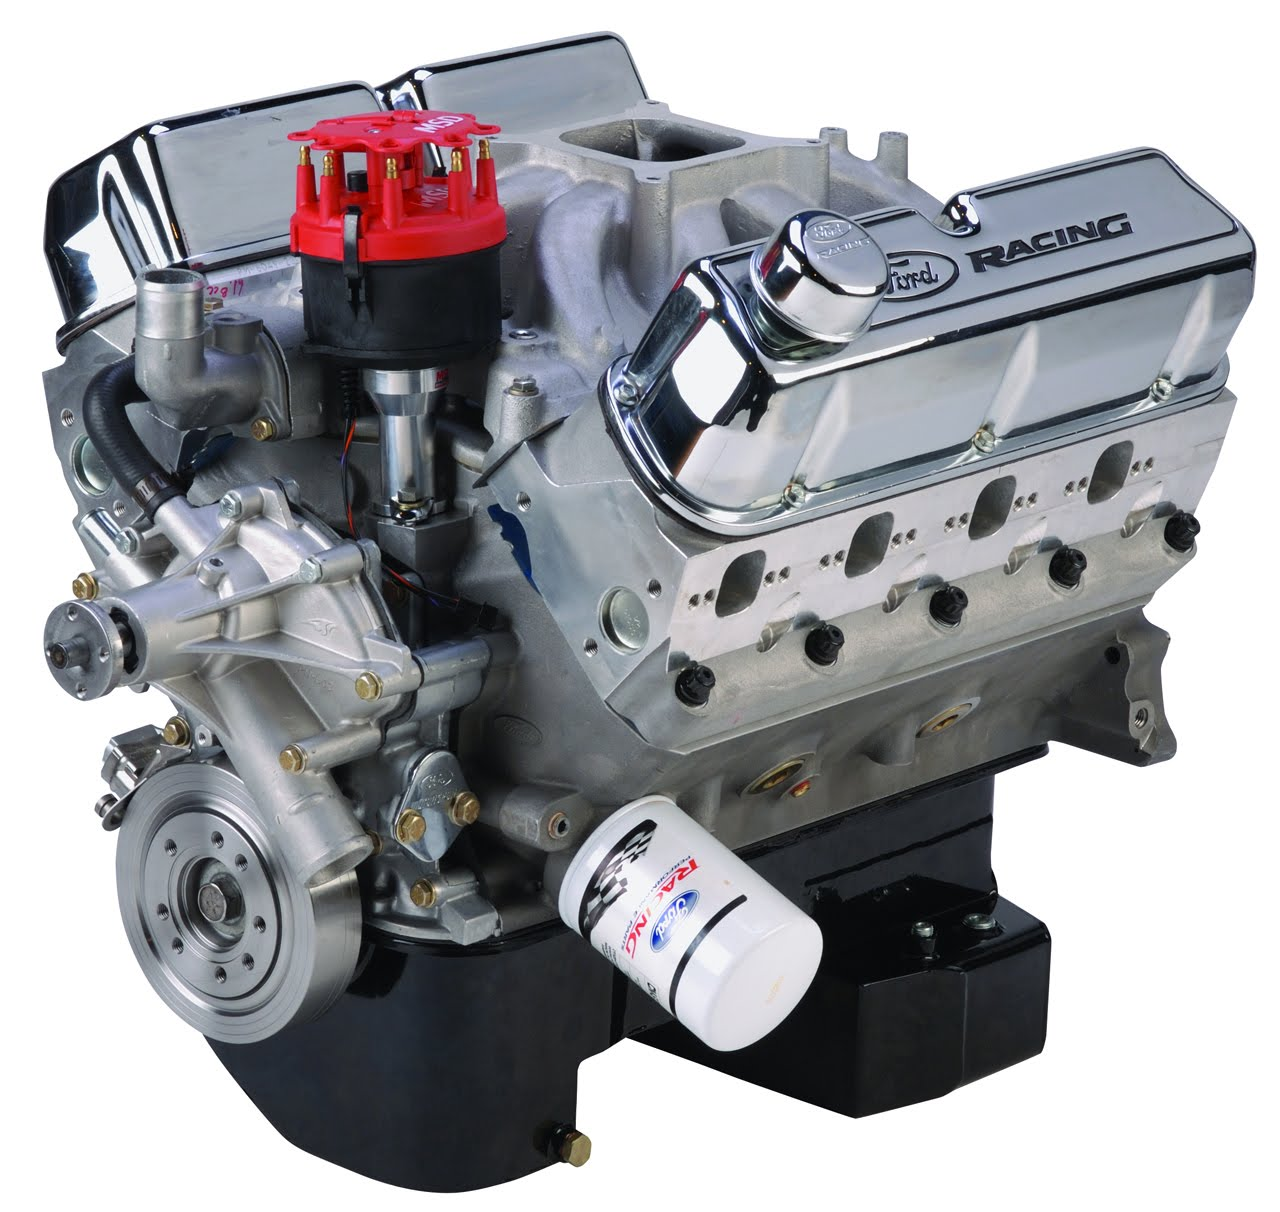 New Ford Crate Motors Up To 535-HP!